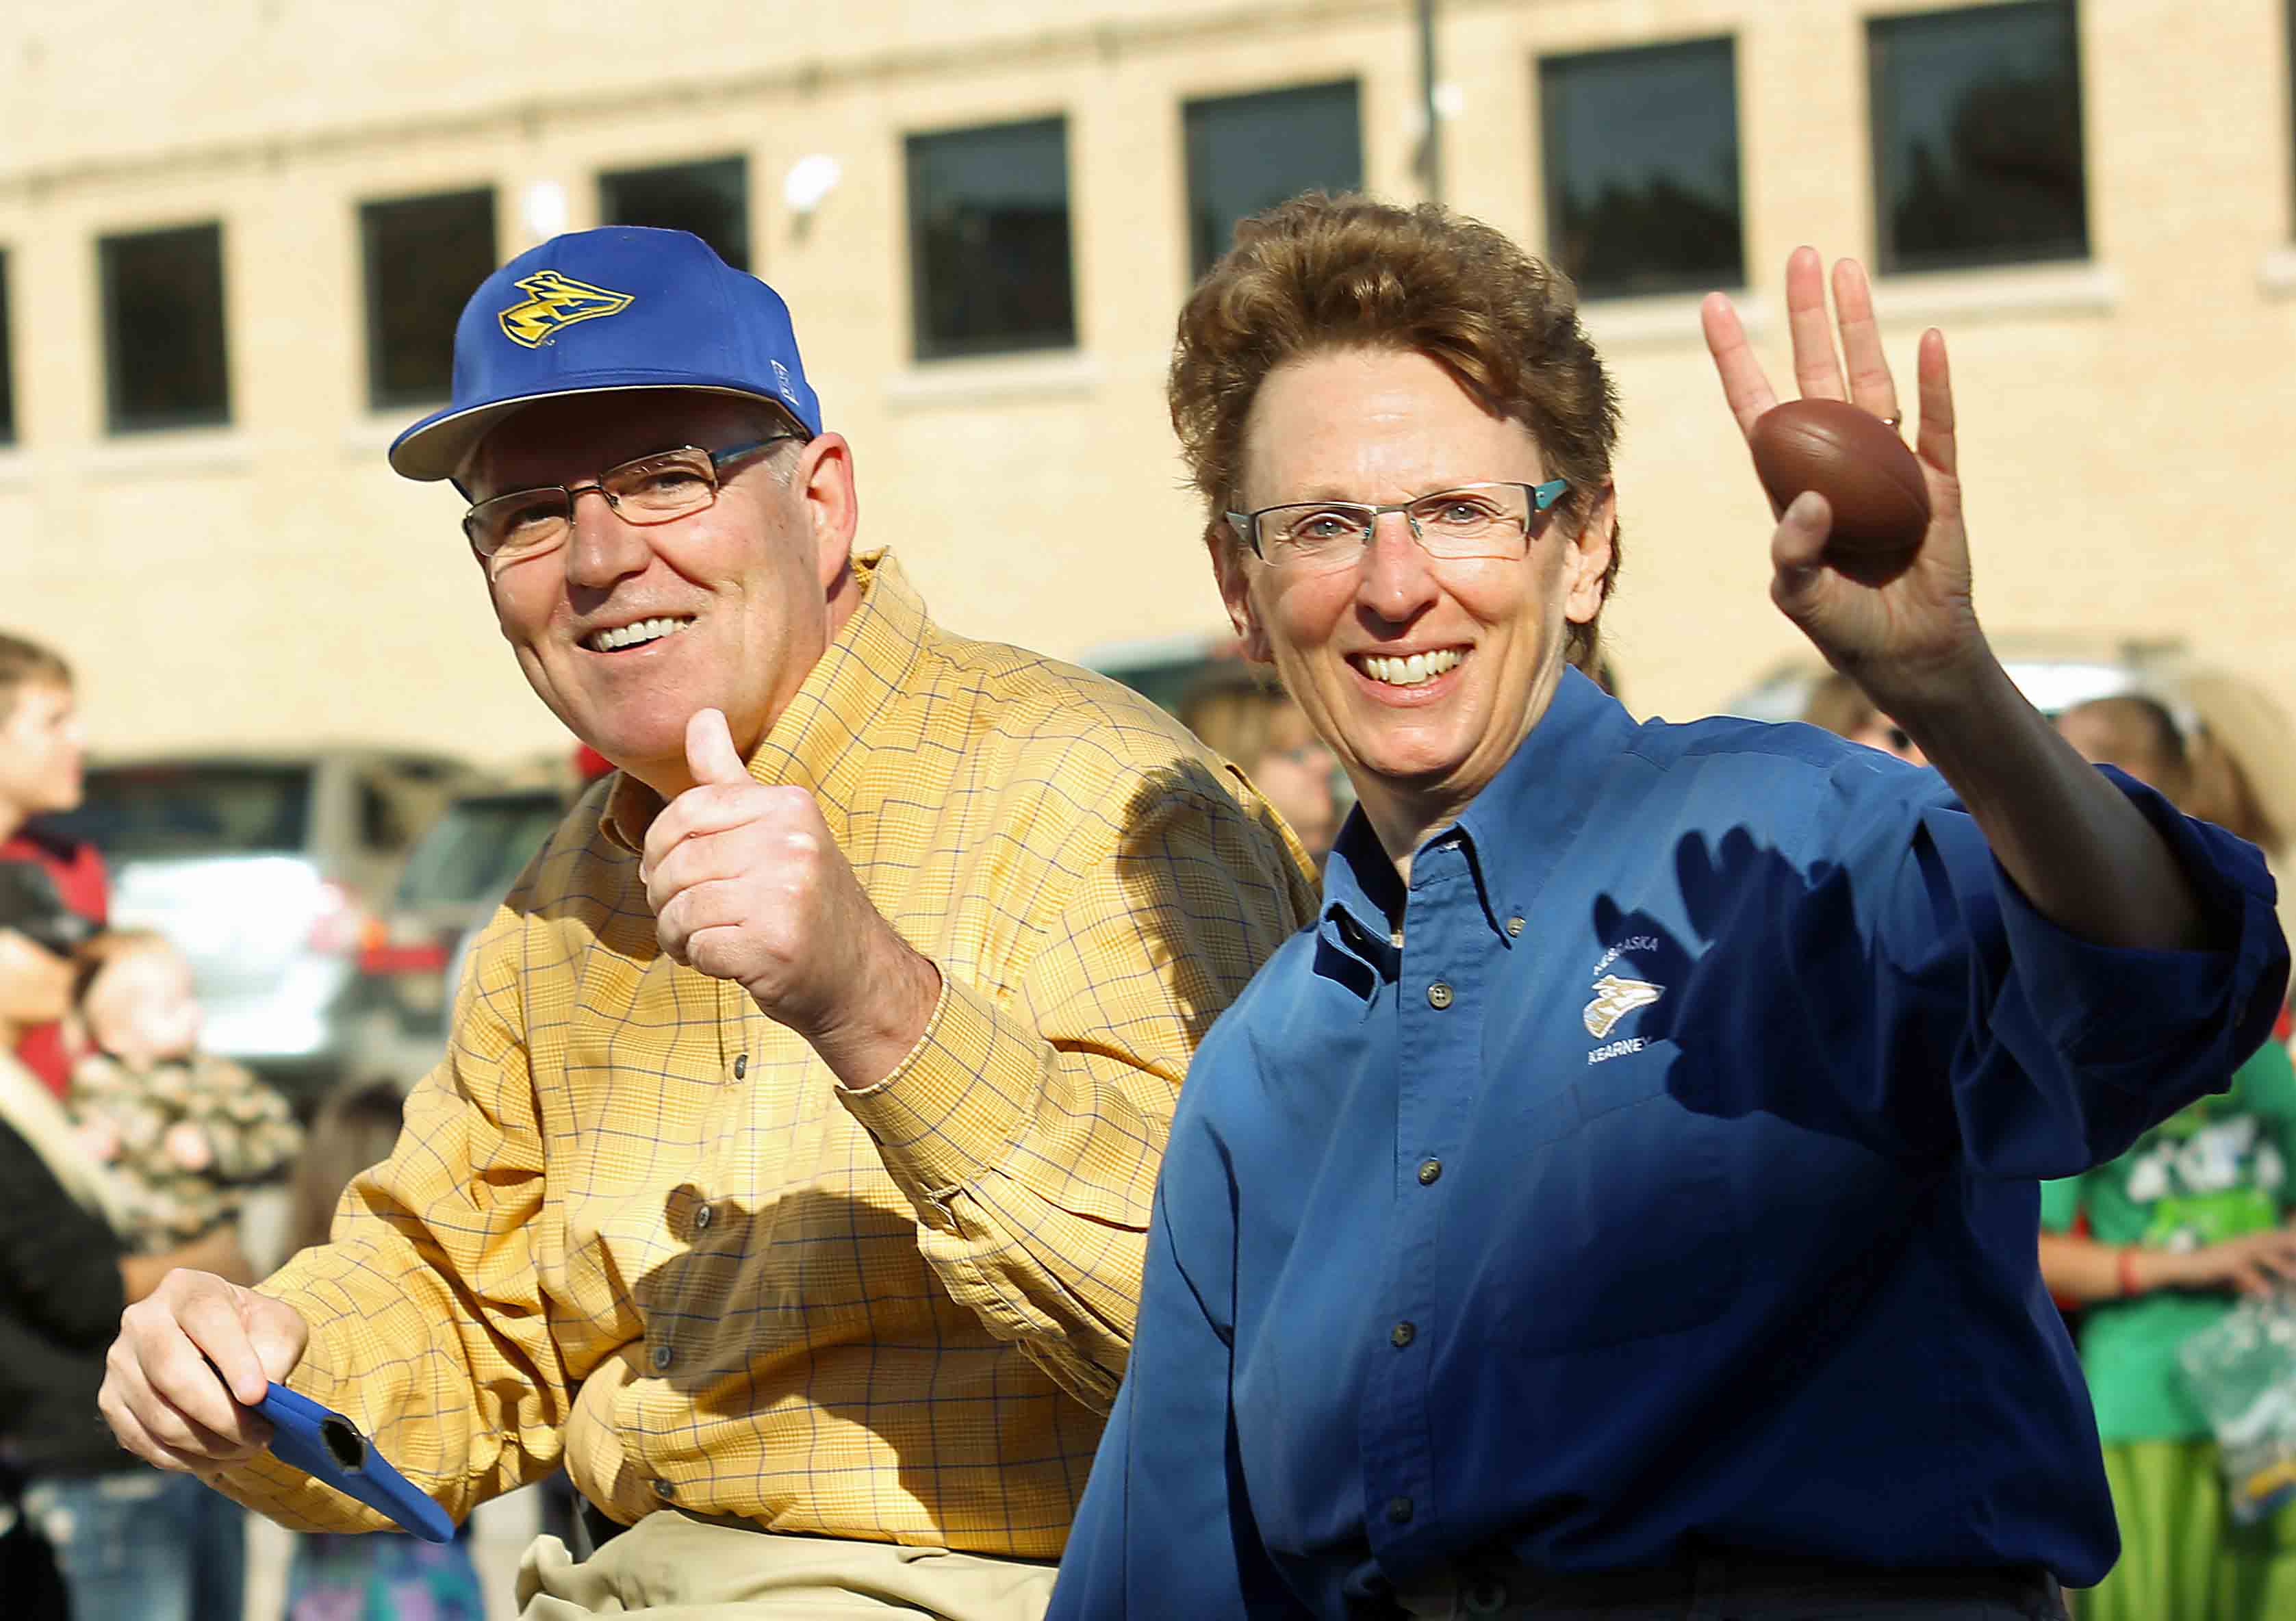 "Jon McBride and his wife, Karen, ride in the 2013 UNK Homecoming parade. McBride was diagnosed with Parkinson's disease in 2009. ""People are used to Jon McBride pre-Parkinson's, and now there's Jon McBride with Parkinson's,"" he said. ""It's different. I don't walk the same, I don't move as quickly, I'm not as expressive. So I've changed. So be it. That's where we are, and now we move forward."" (Photo by Todd Gottula/UNK Communications)"